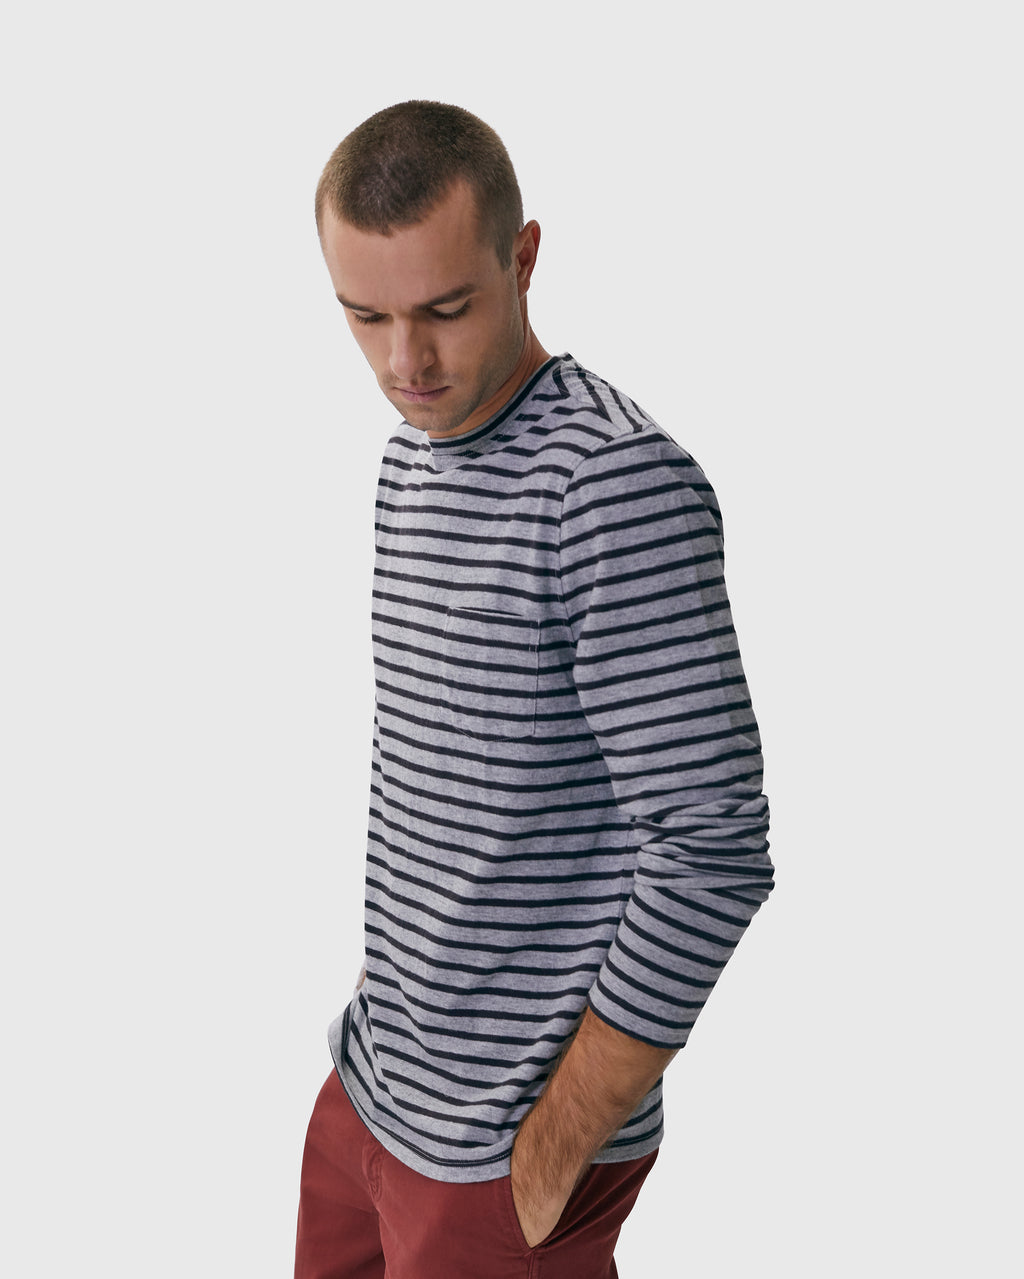 The Mesa Tee in Heather Grey/Black Stripe